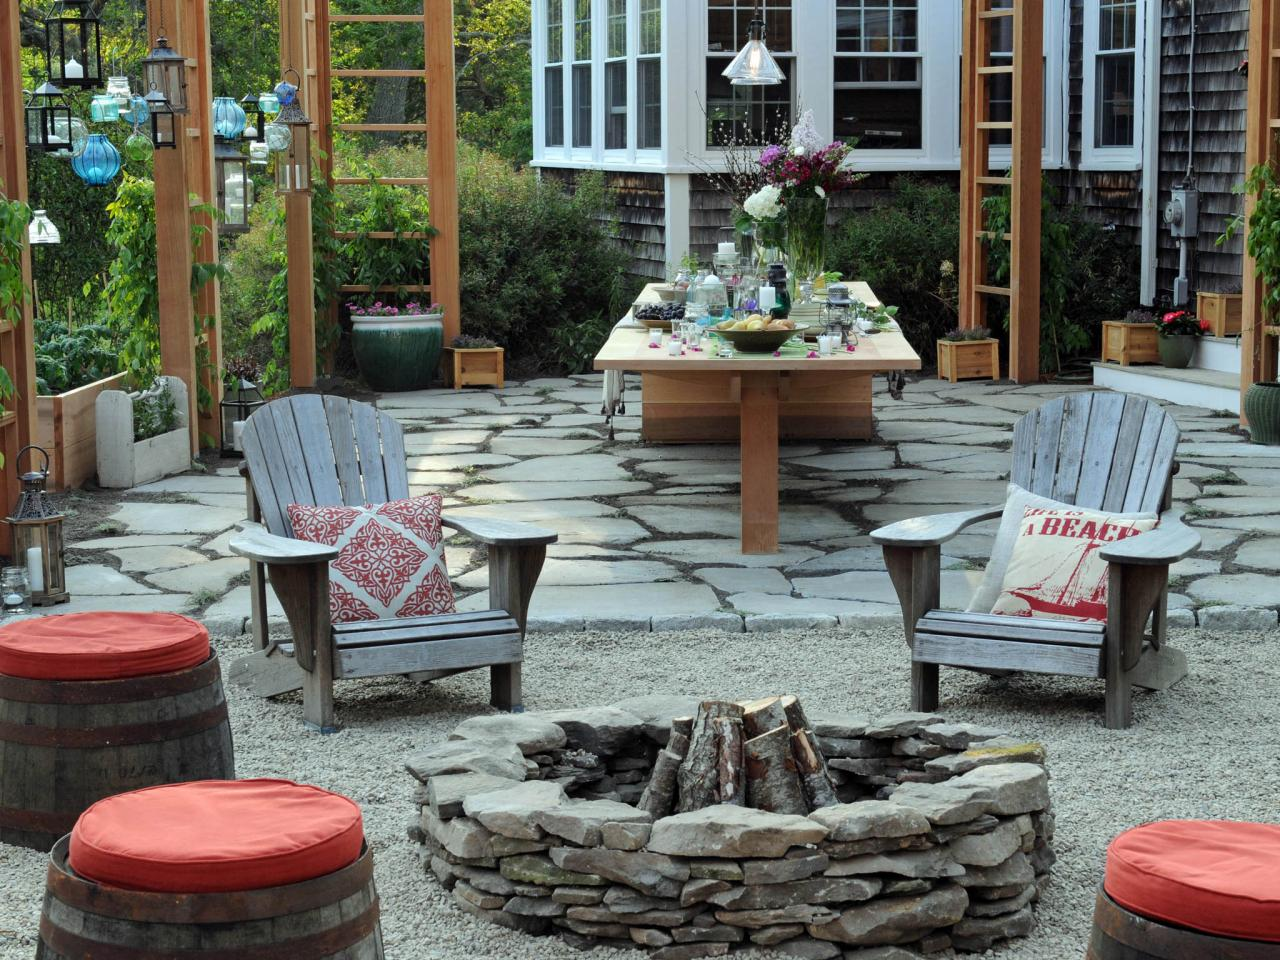 Fire Pit Design Ideas For Backyard Transformation - Wilson ... on Garden Ideas With Fire Pit id=27679